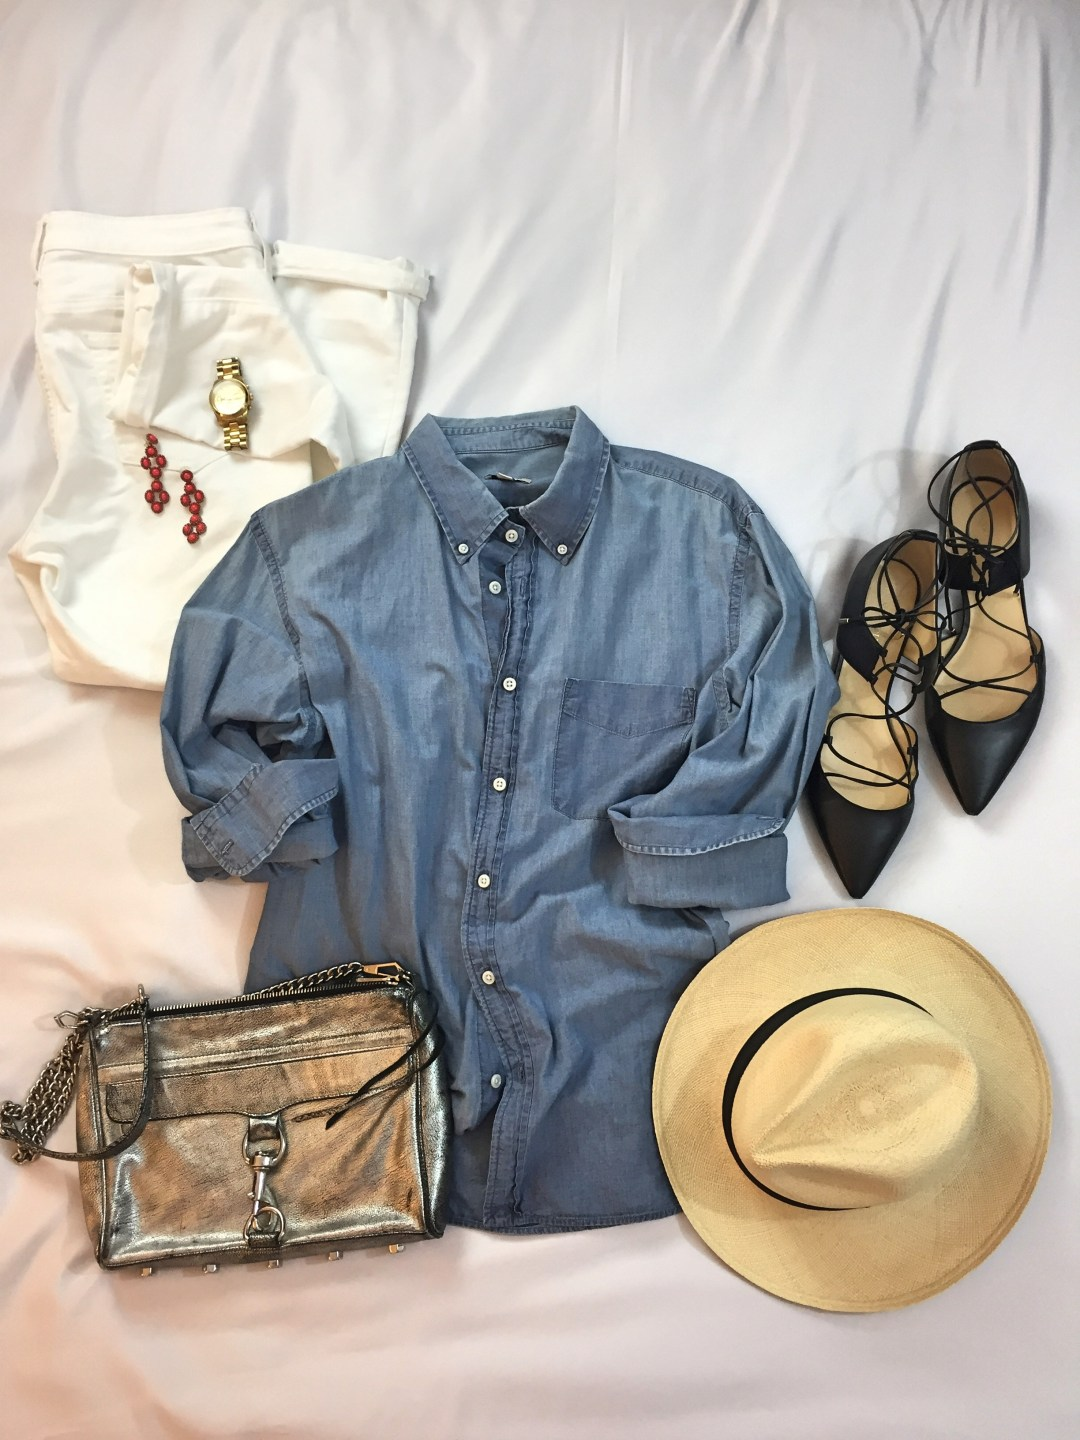 outfit planning